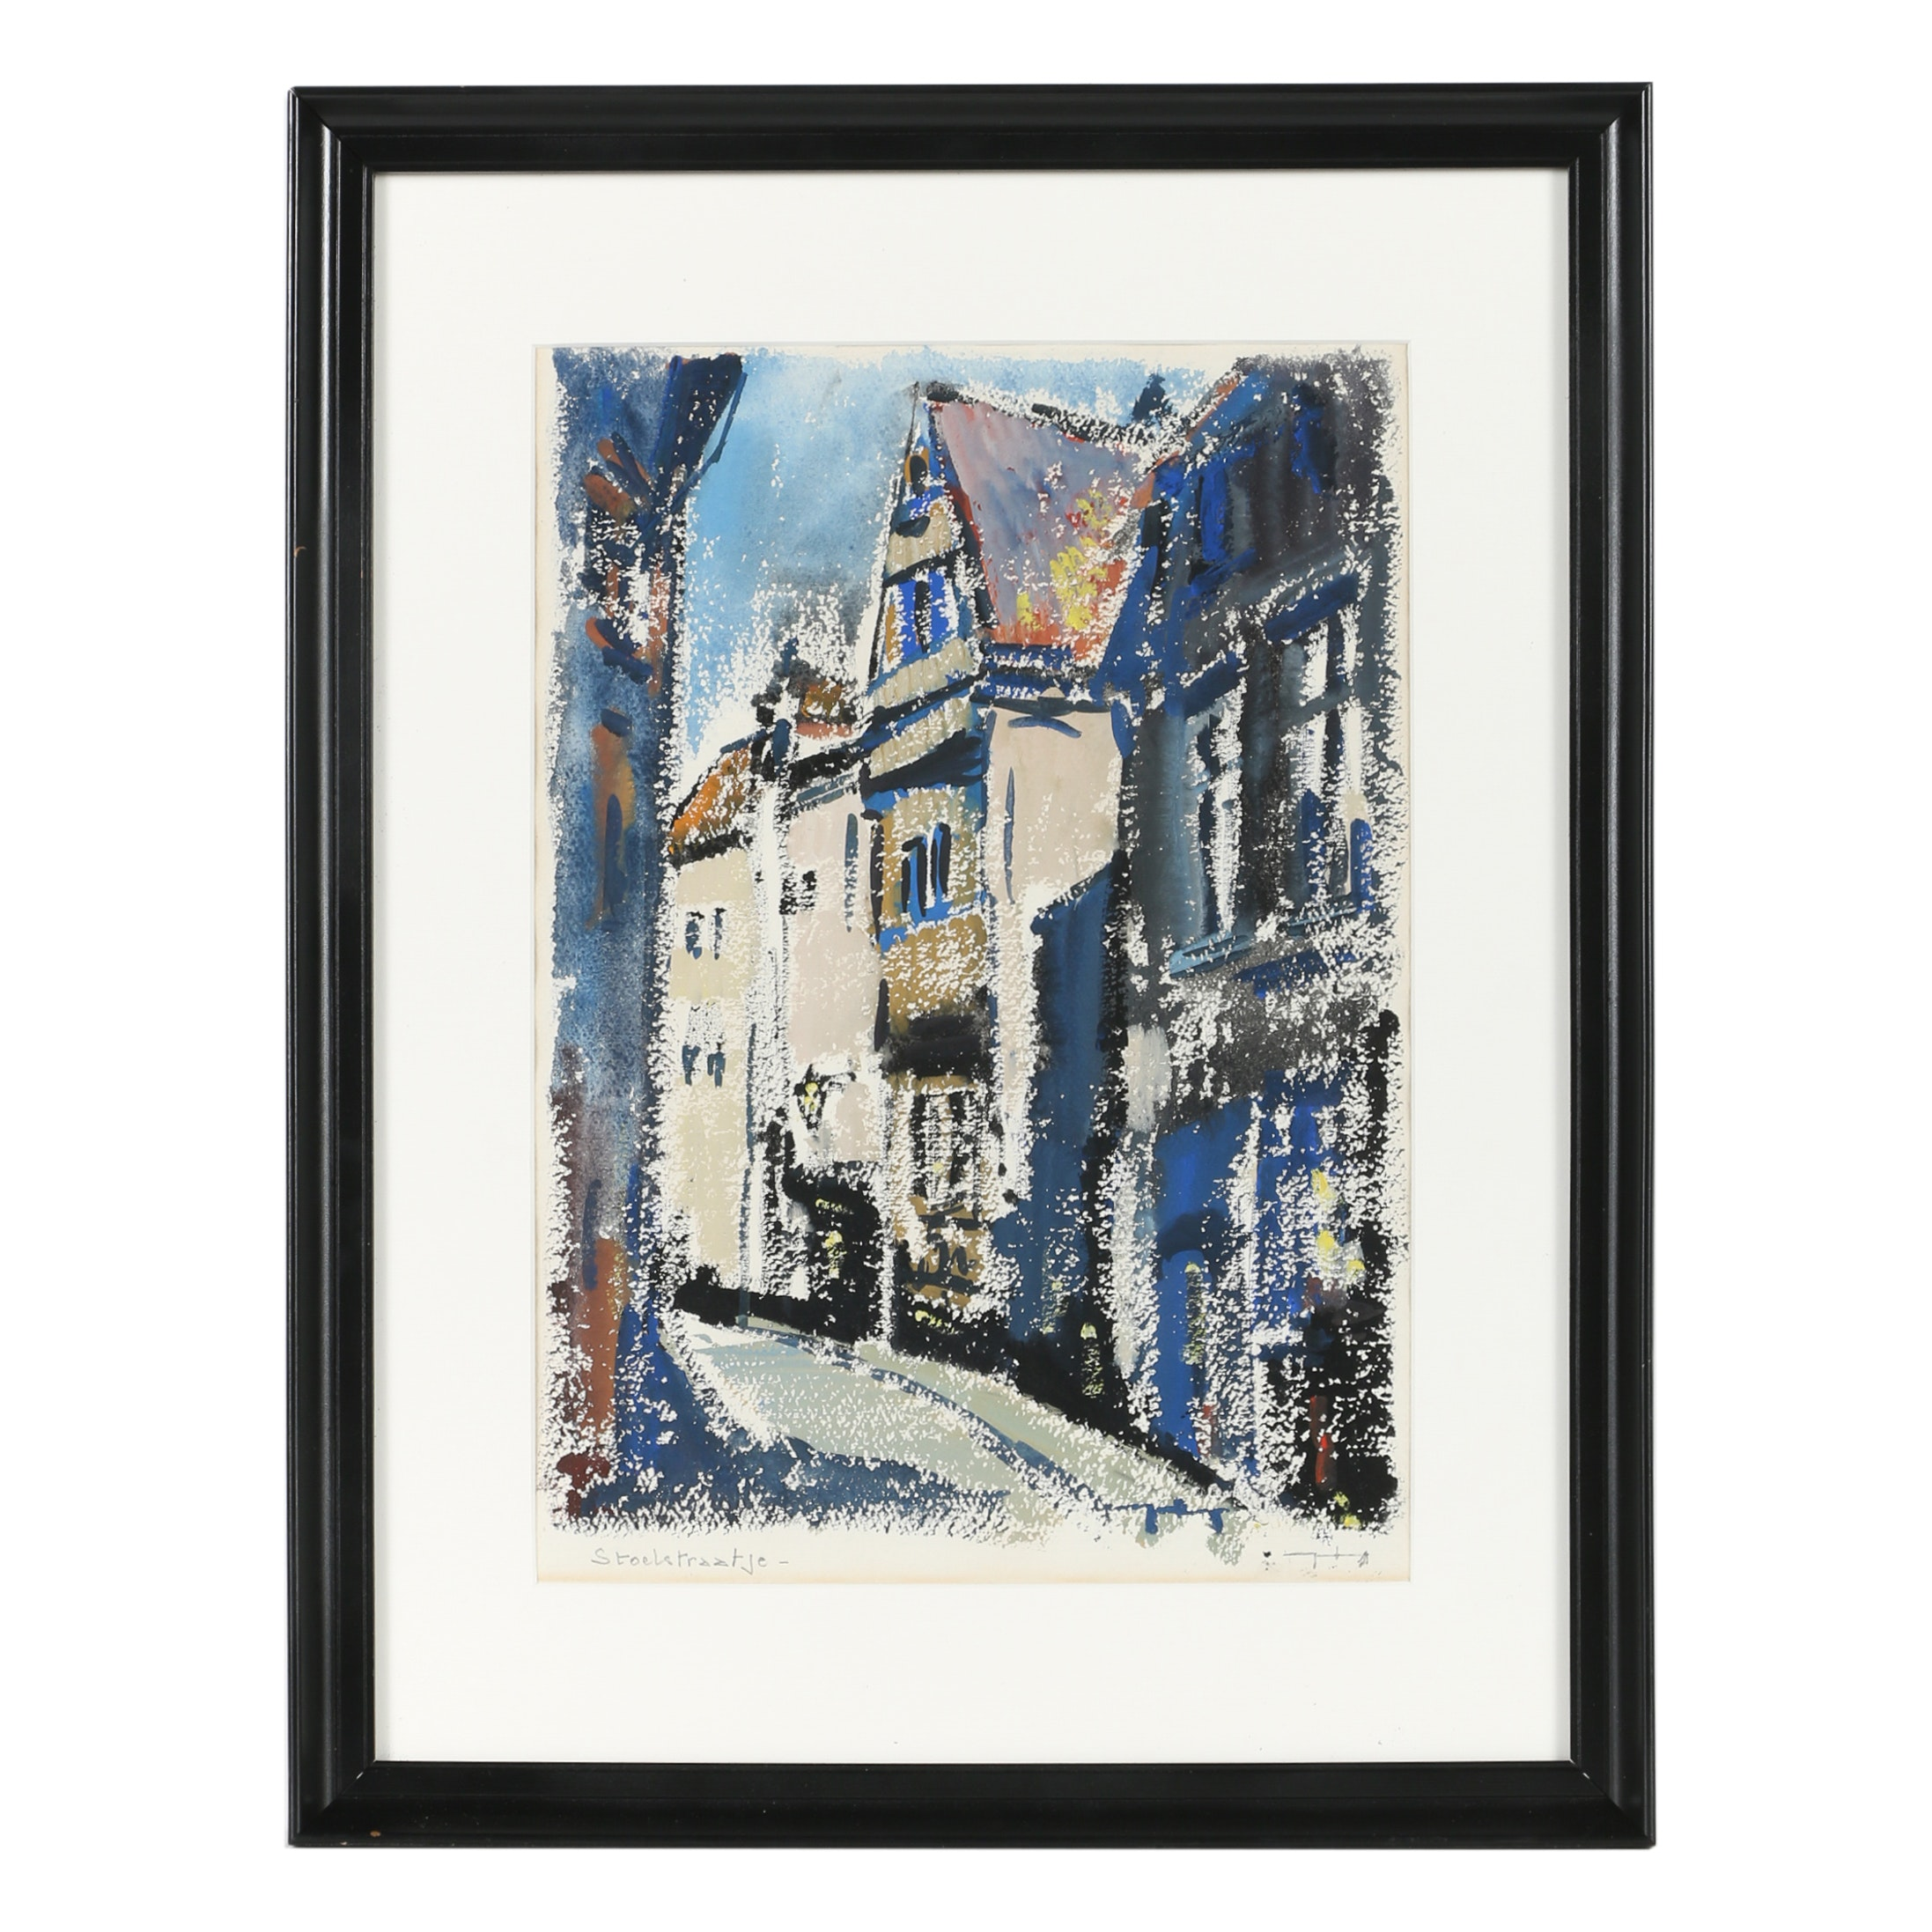 """Mid 20th-Century Watercolor and Gouache on Paper """"Stoelstraatje"""""""